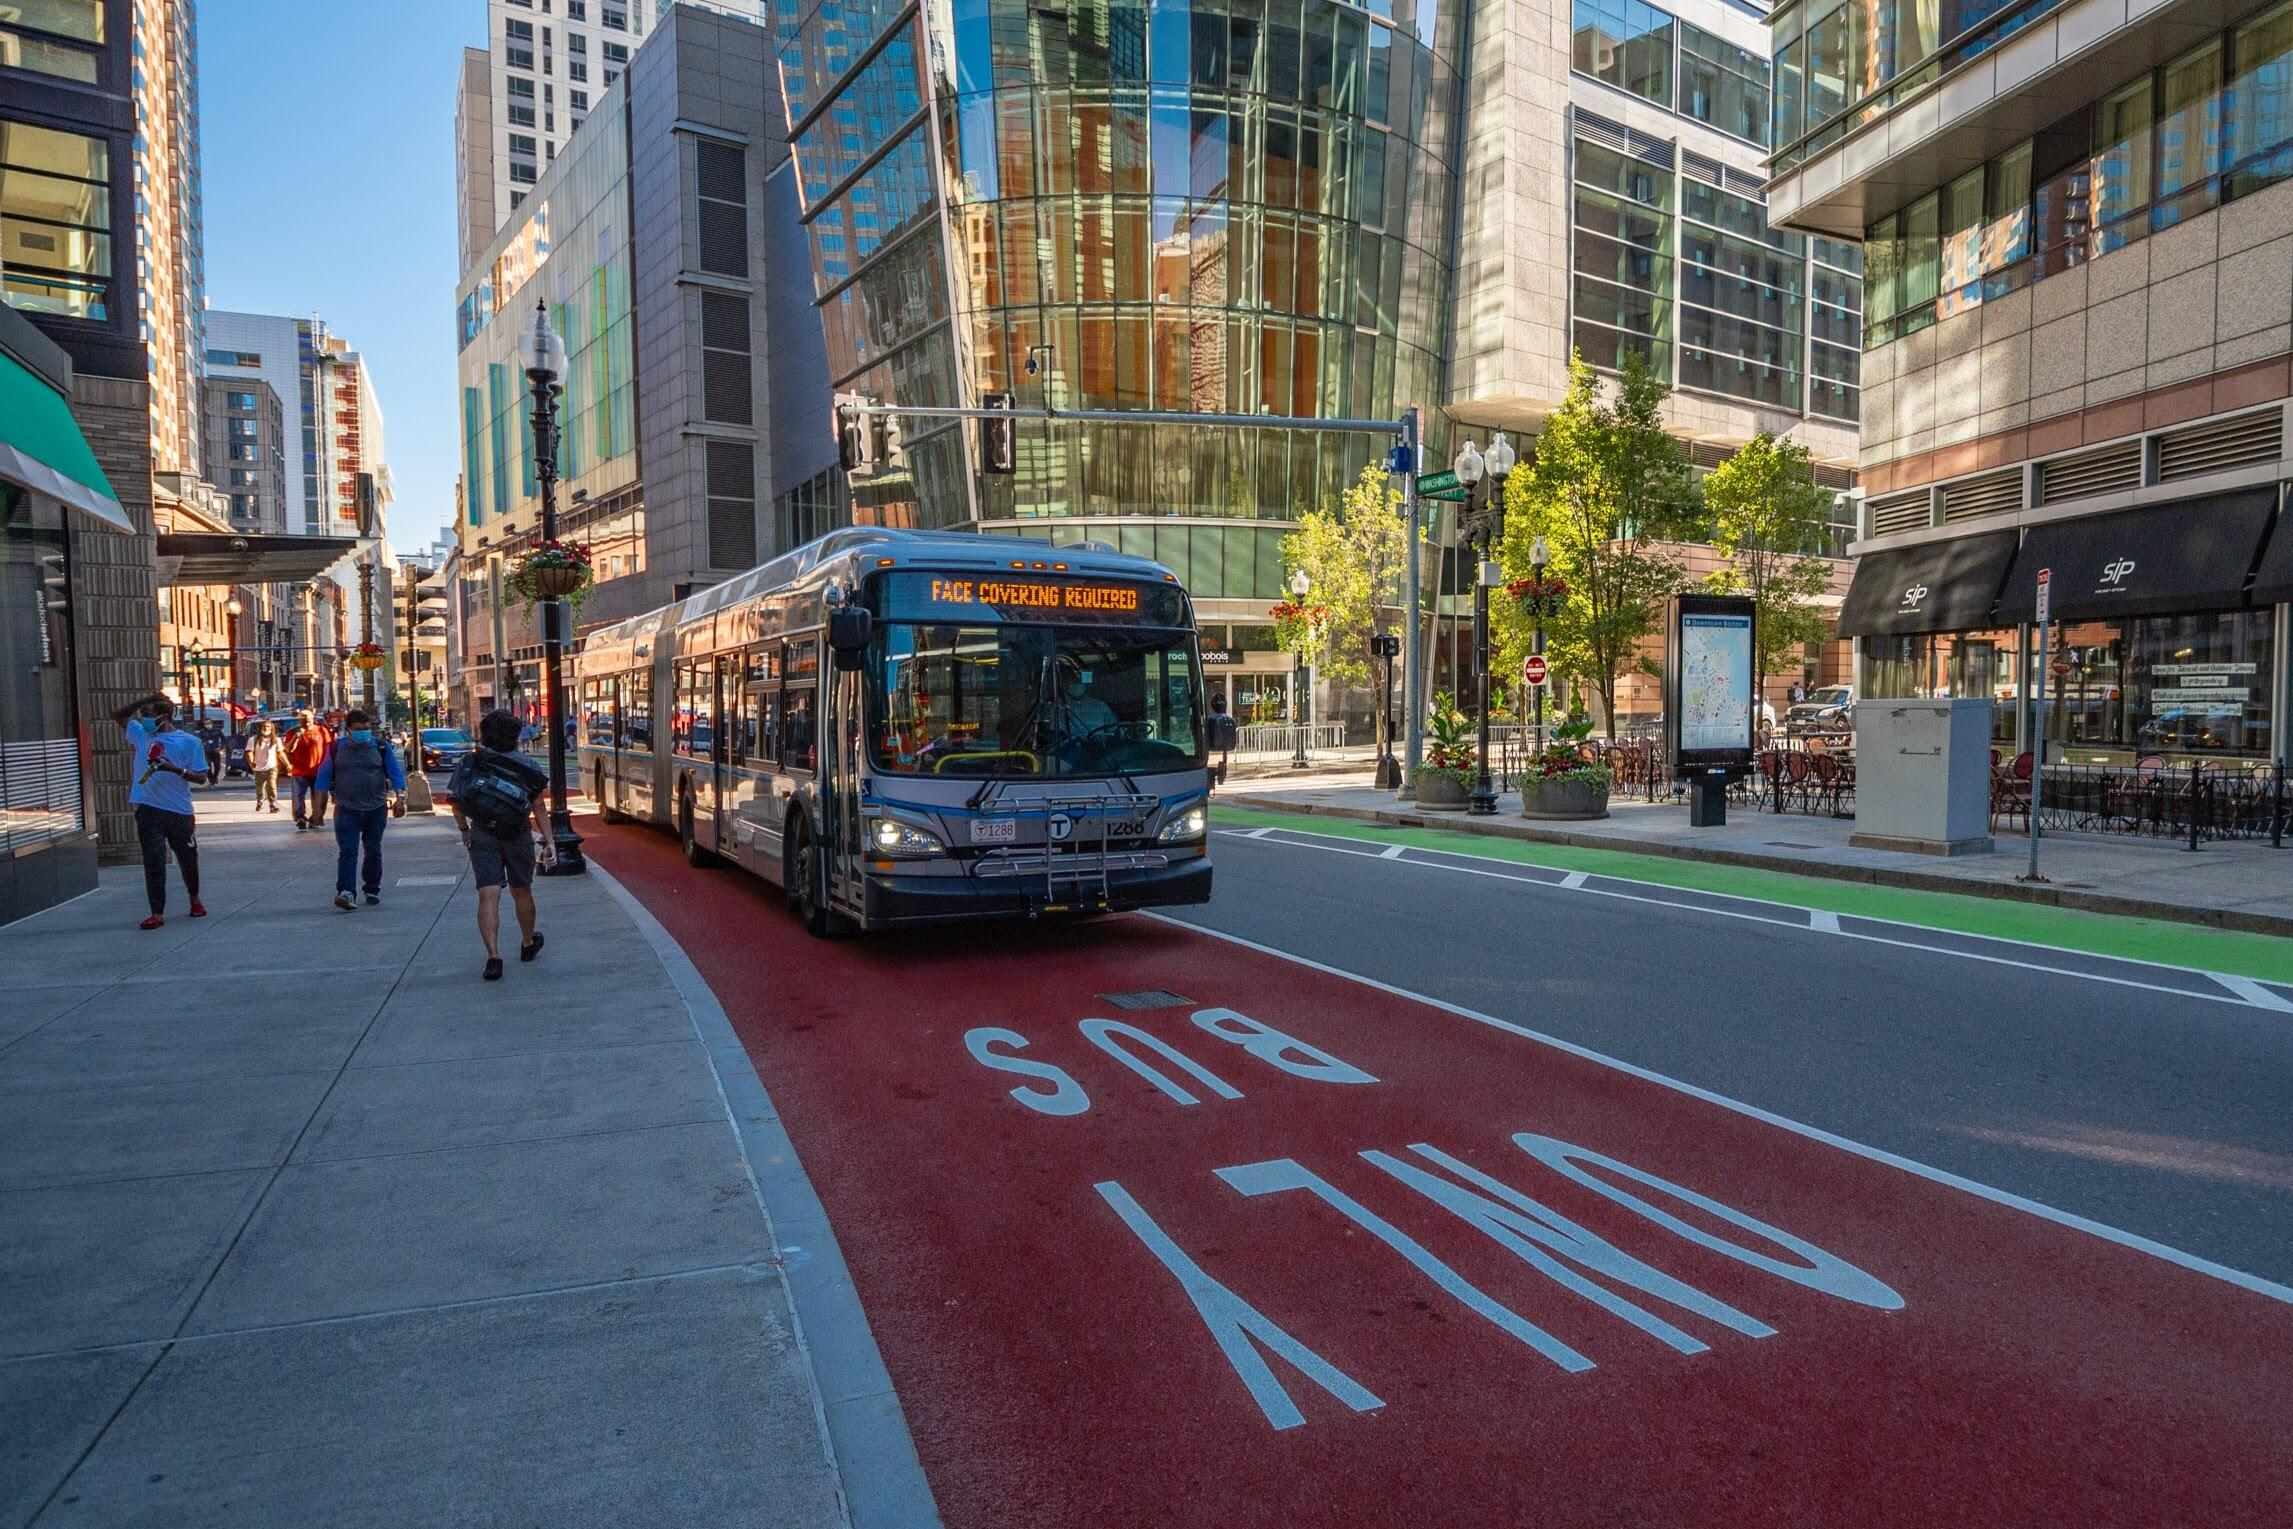 """Silver Line bus in a bus lane along Washington St in Downton Boston, with a headsdign that reads """"Face Masks Required"""""""